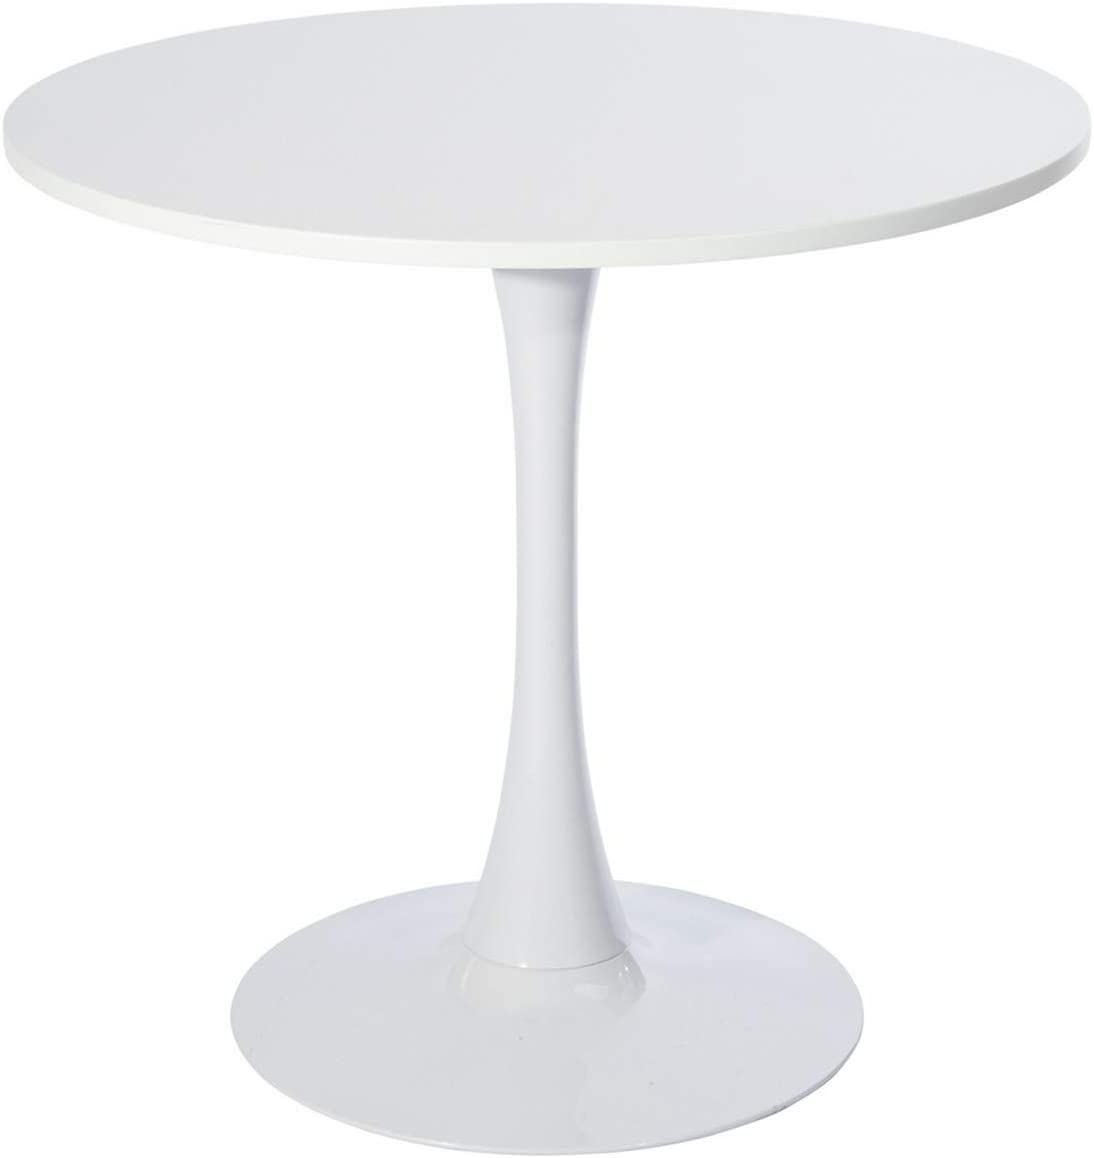 Easy Assembly GreenForest Round Dining Table Black Mid-Century Modern Tulip Pedestal Leisure Table with Srong Metal Base